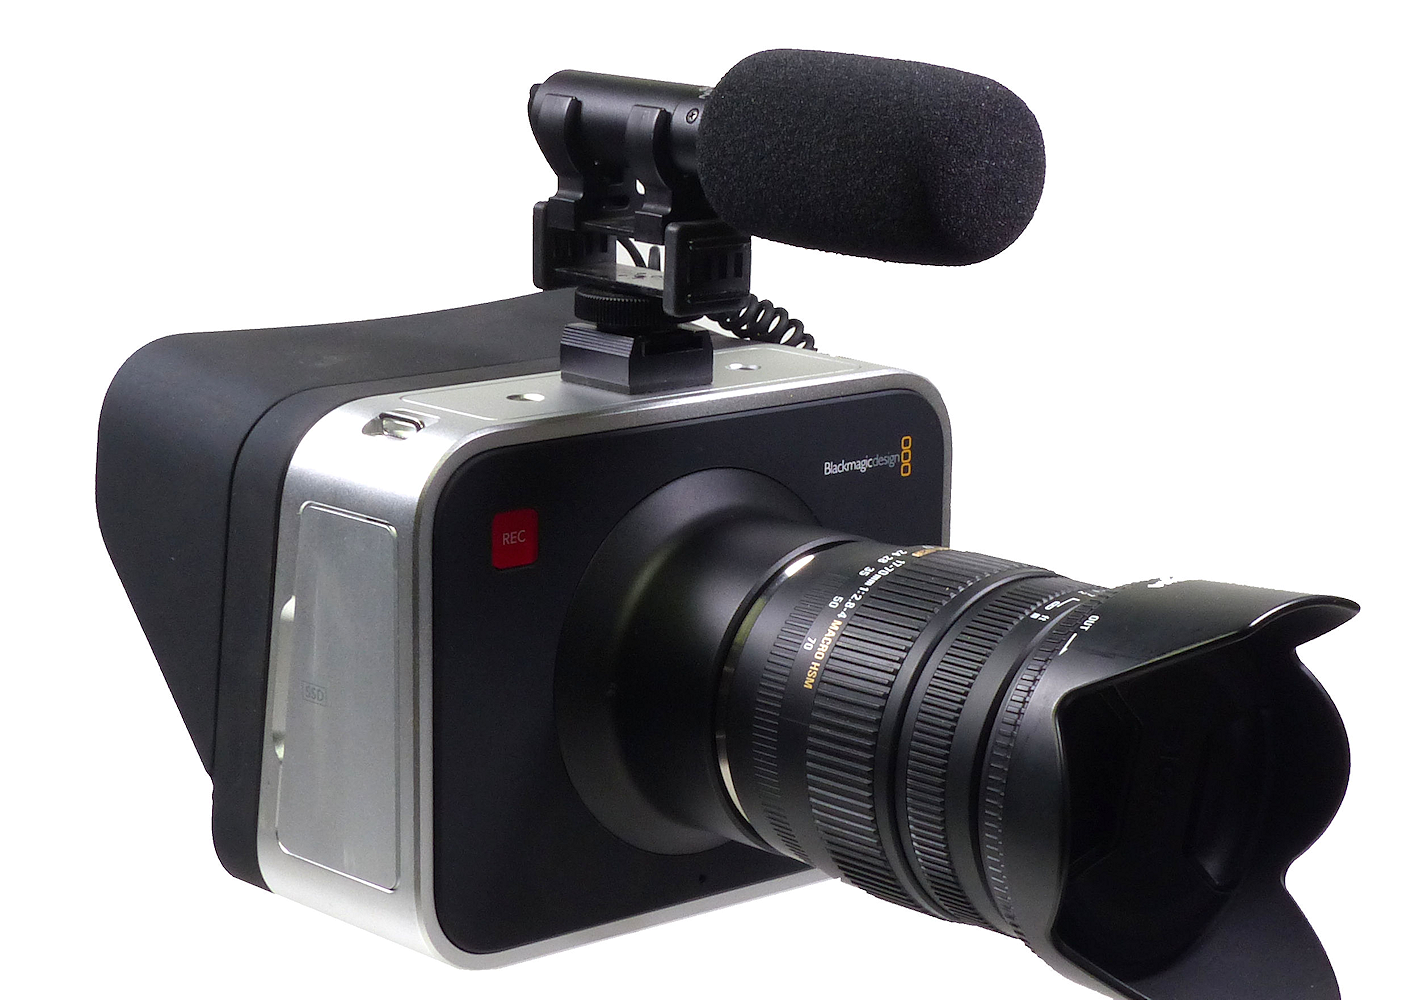 ALZO Cold Shoe Mount for BMCC 4K, Blackmagic Pocket Cinema Cameras, cages  and Rigs